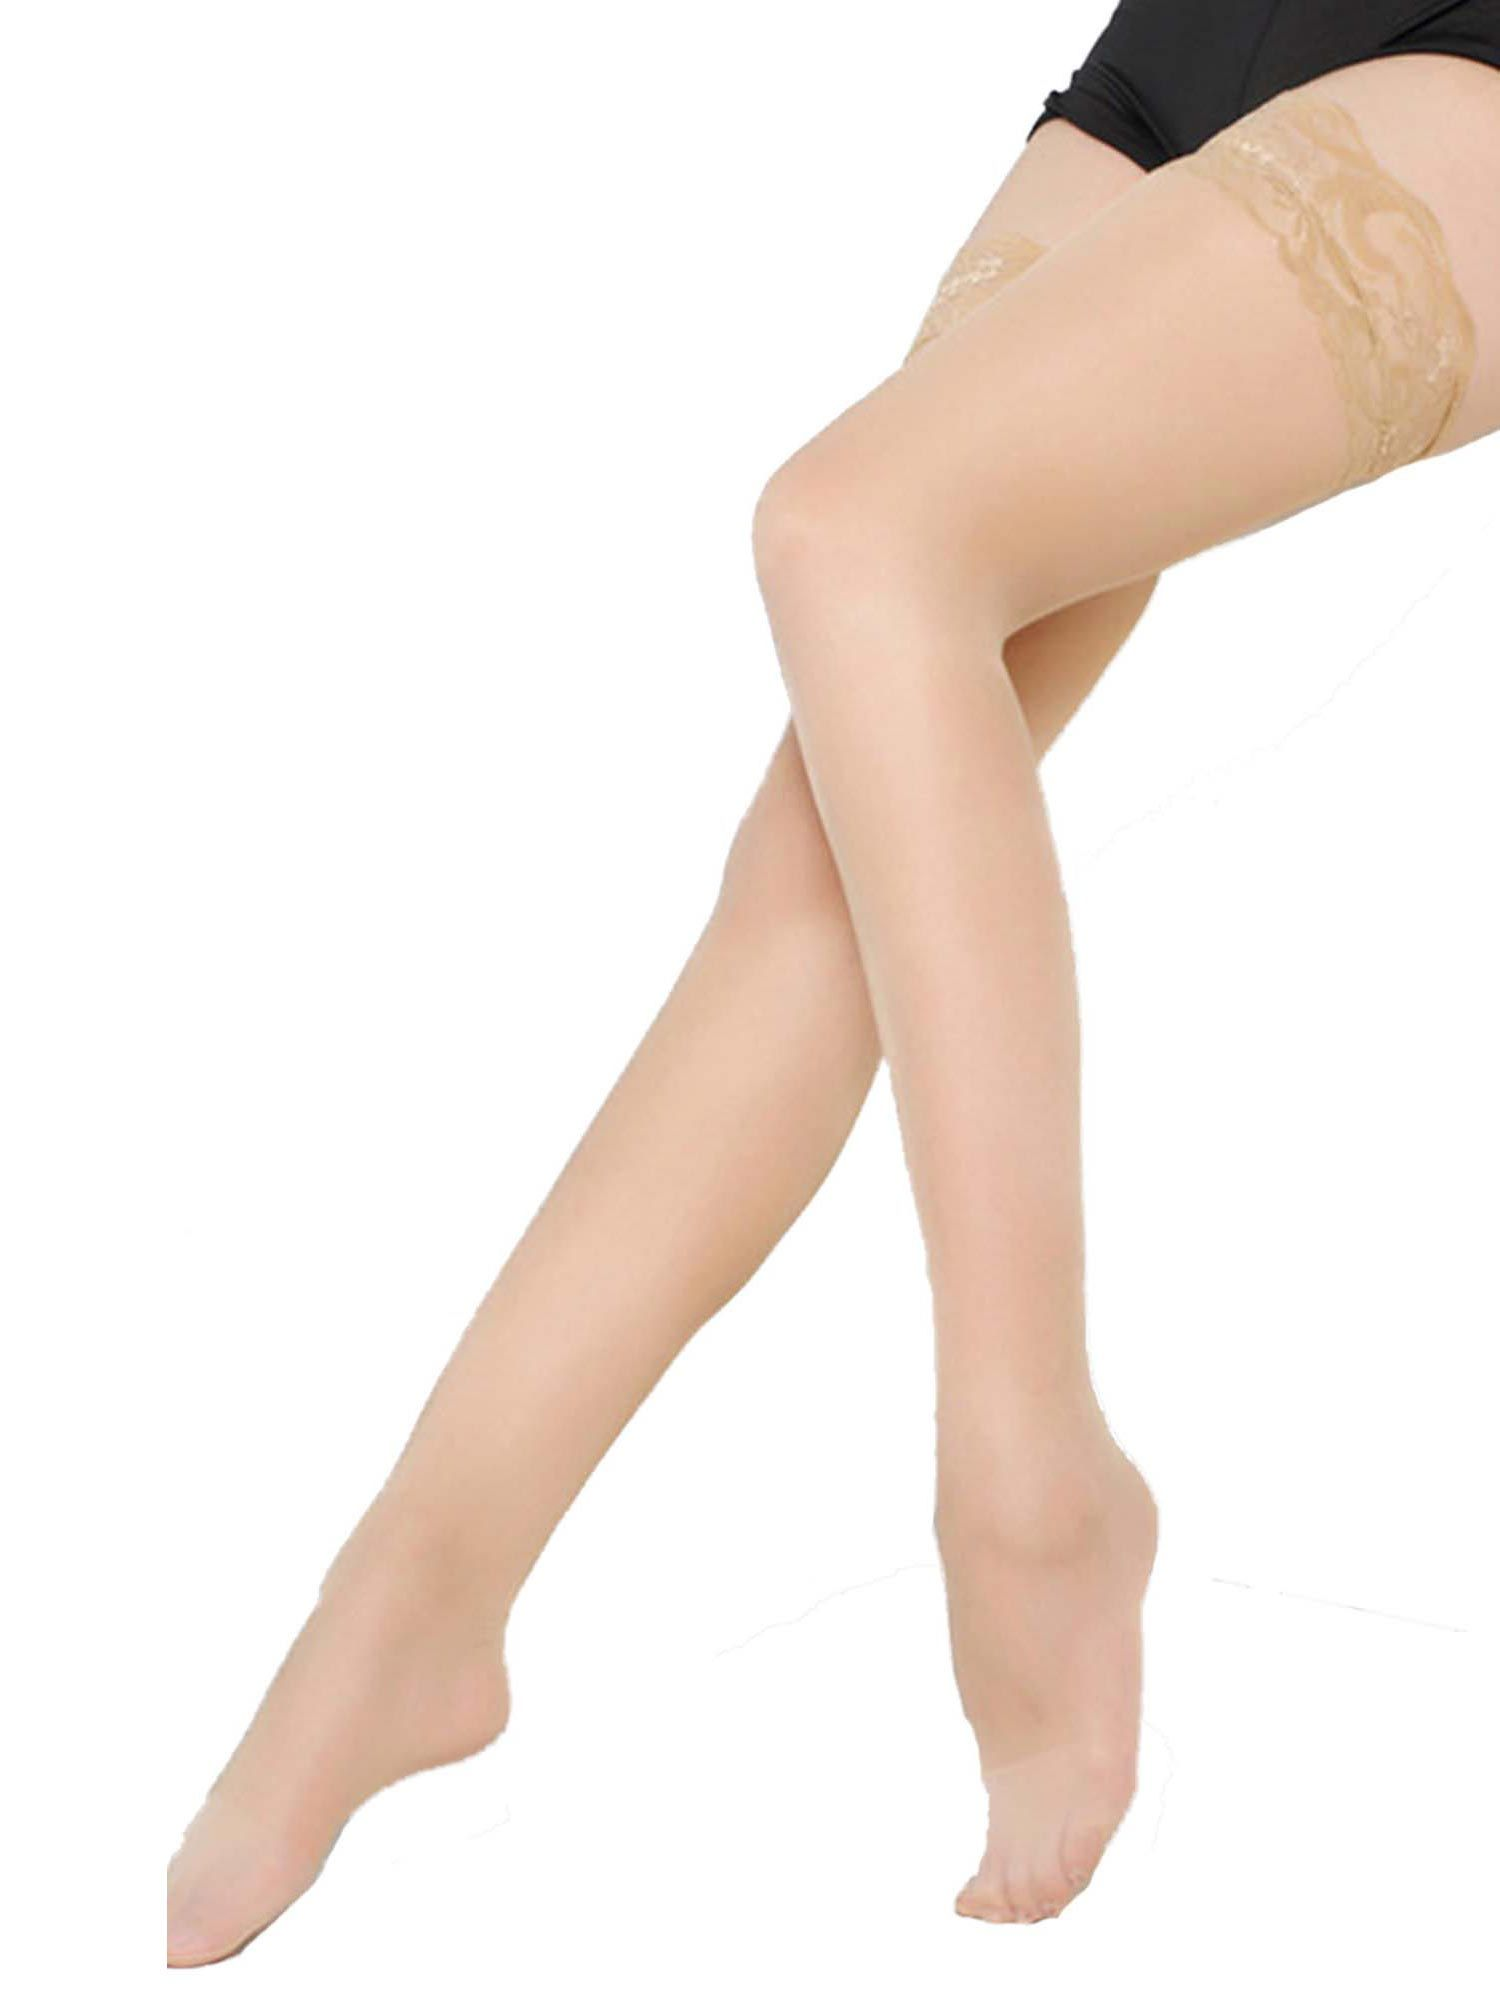 3bc4efeb8e693 Sexy Plus Size Stay Up Sheer Lace Top Thigh High Stocking Hosiery- size  16-20#Sheer#Lace#Top